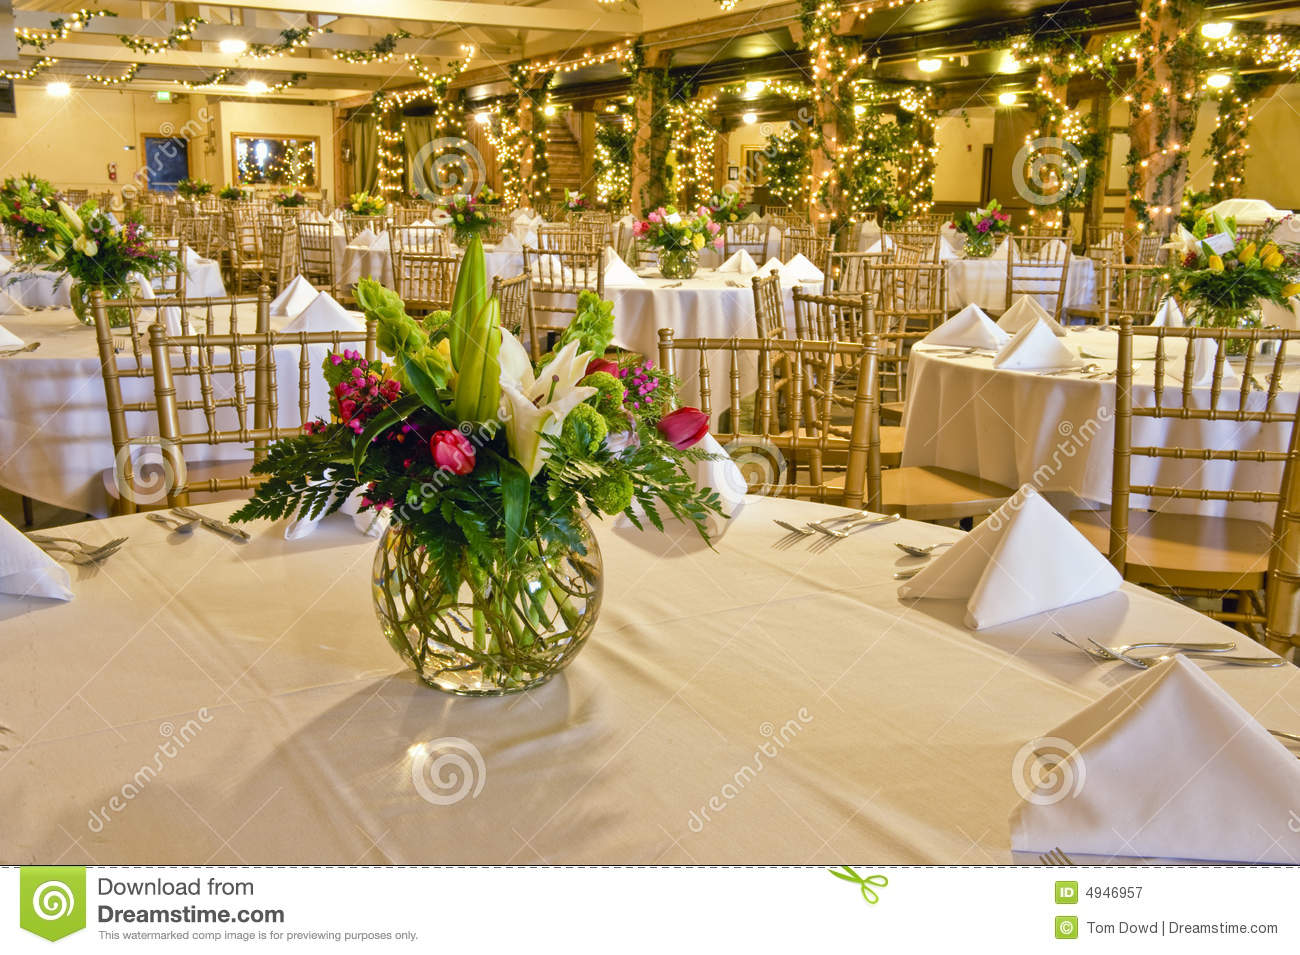 Flower Centerpiece On Table Royalty Free Stock Photography